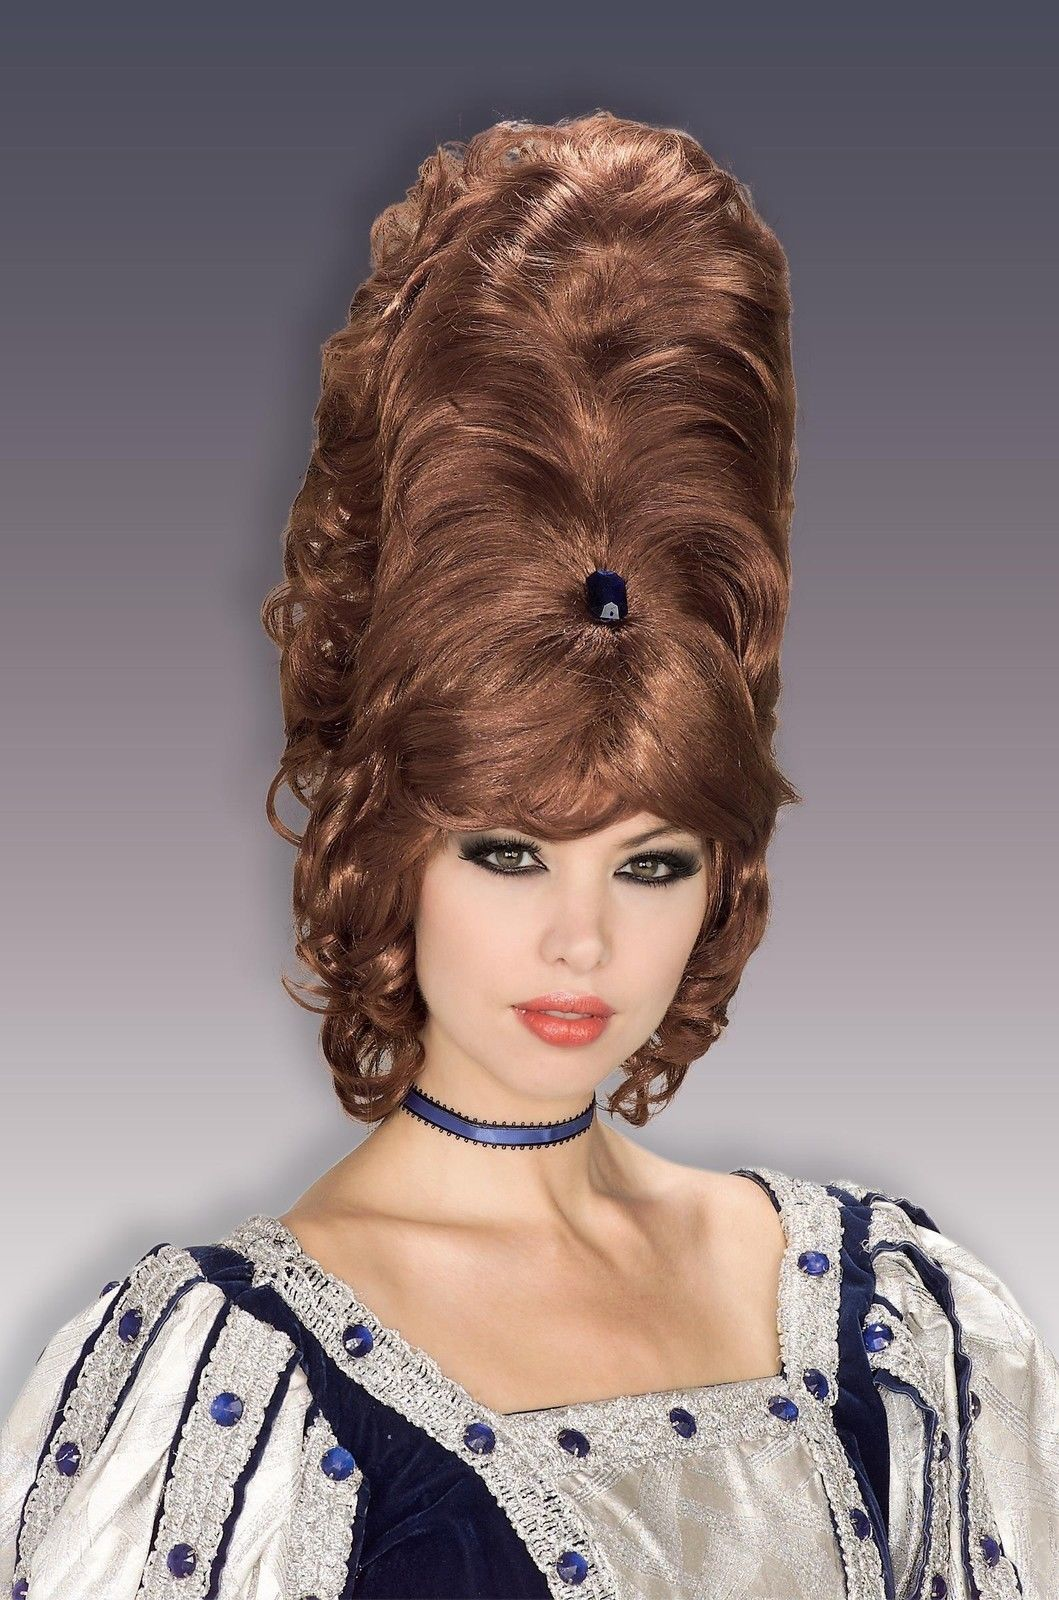 60s 70s Retro Beehive Wig Tall Hair Victorian Queen Western